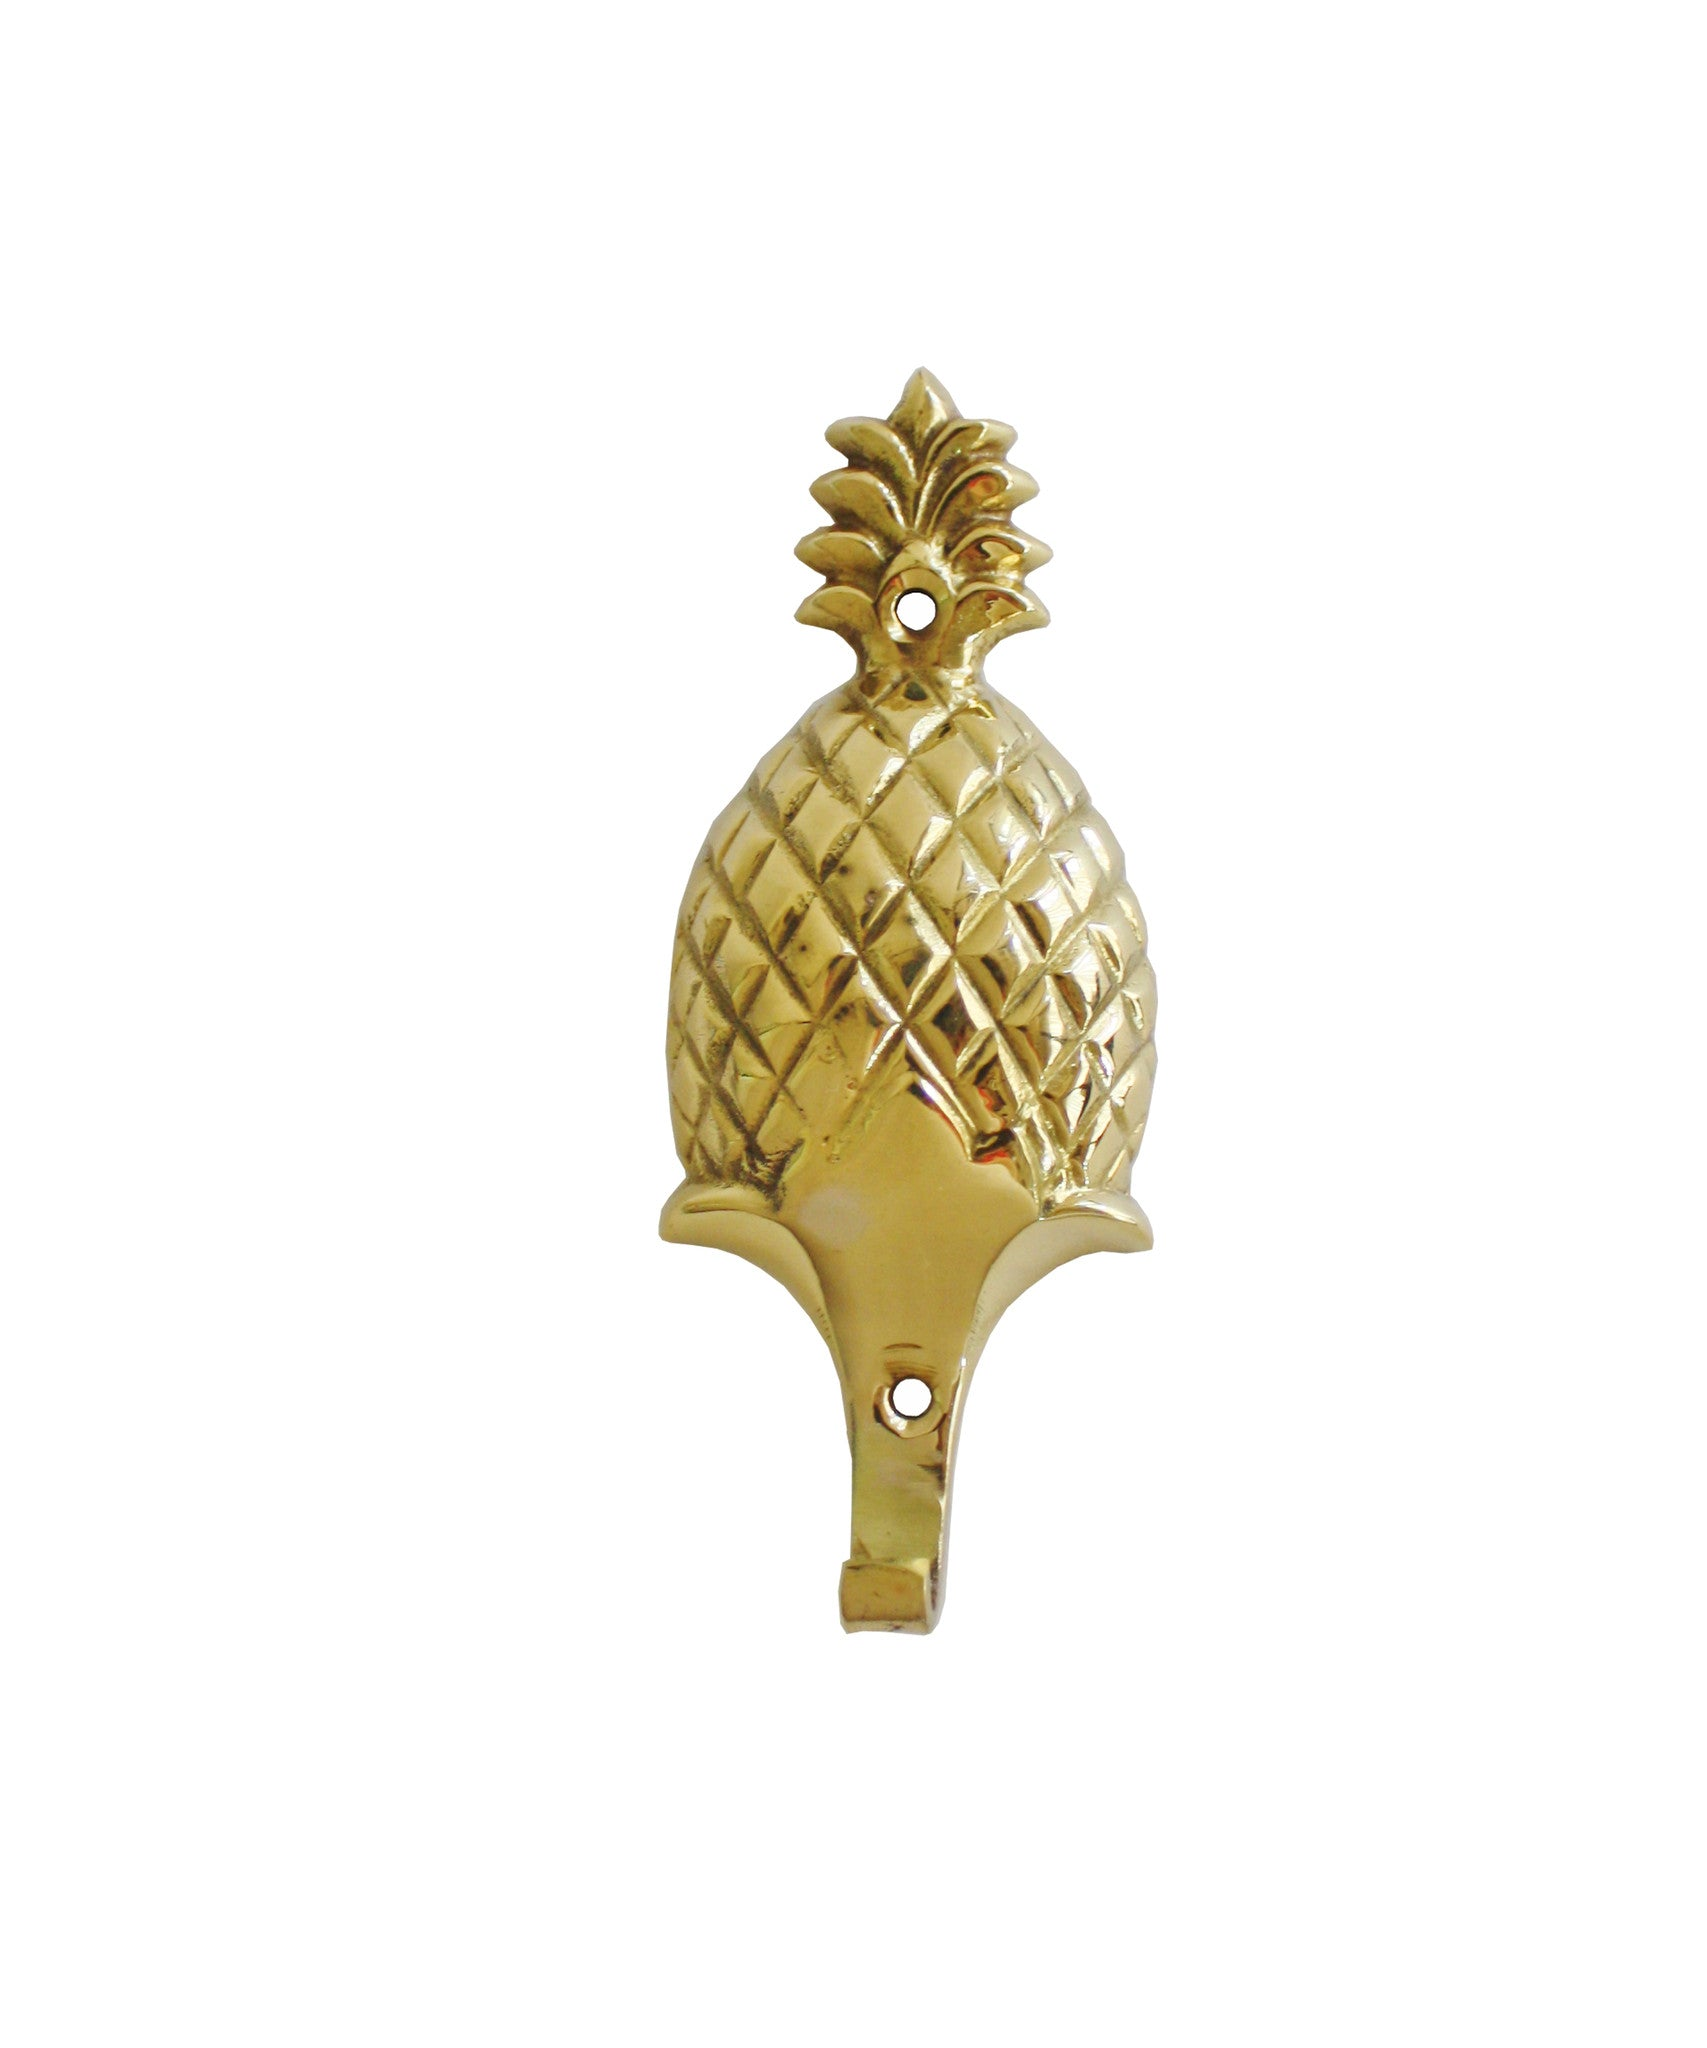 pineapplewallhook-4.jpg?v=1379116175